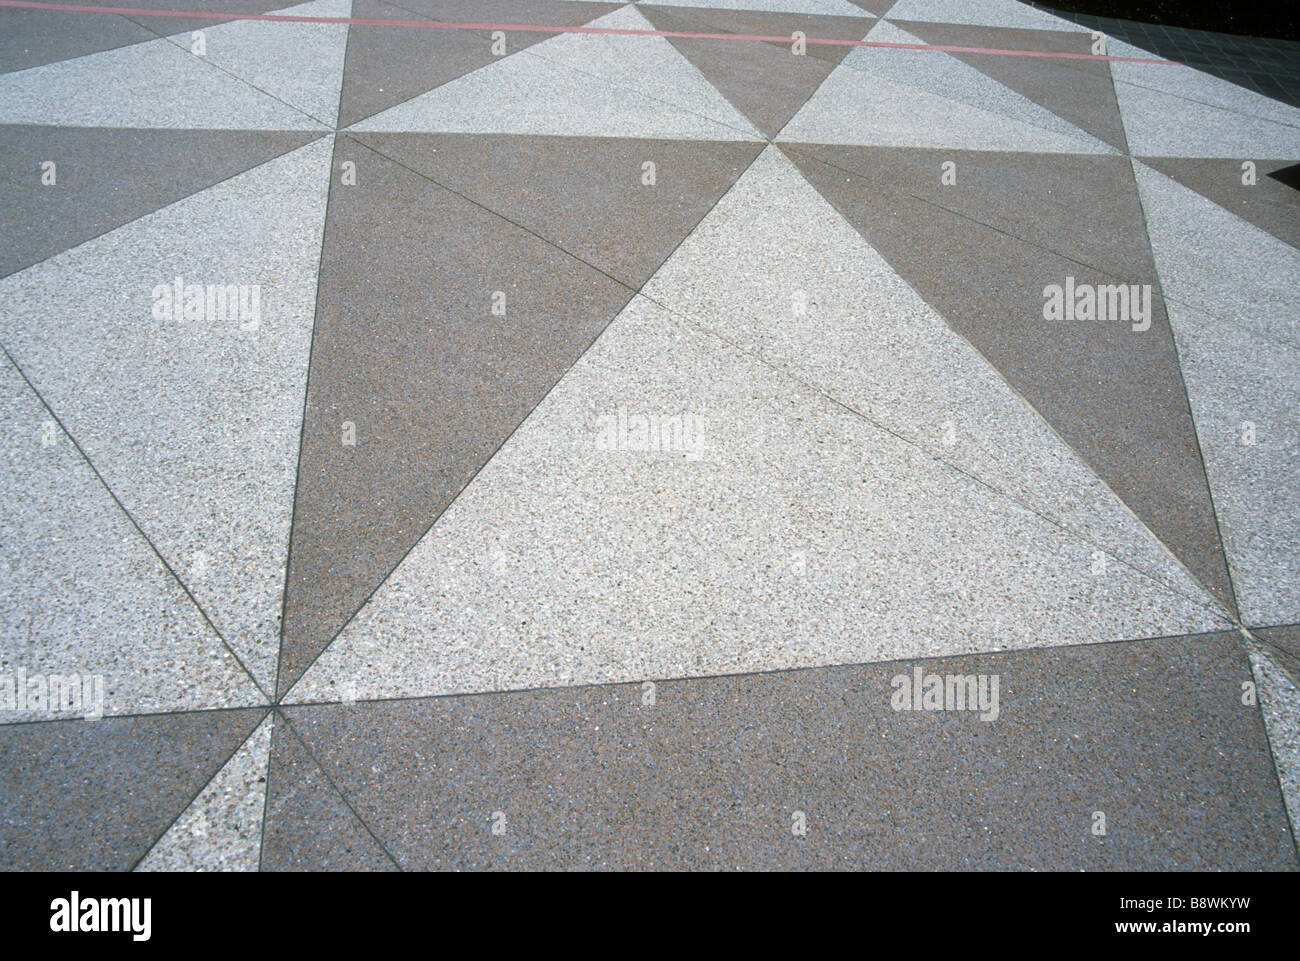 triangle shape pattern geometry floor tile repeat repetition theme ...